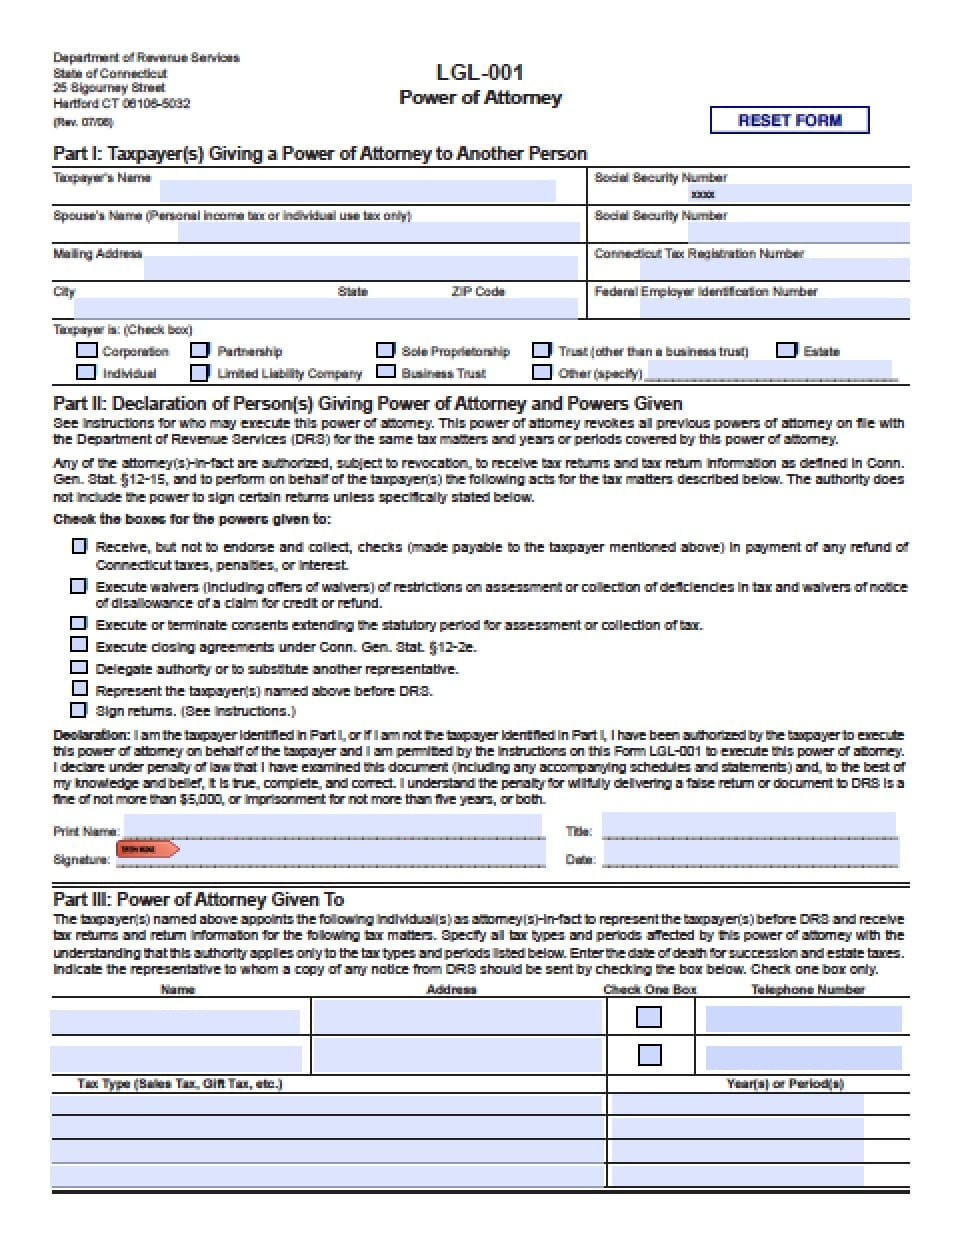 Connecticut Durable Financial Power of Attorney Form #0: Connecticut Tax Power of Attorney Form